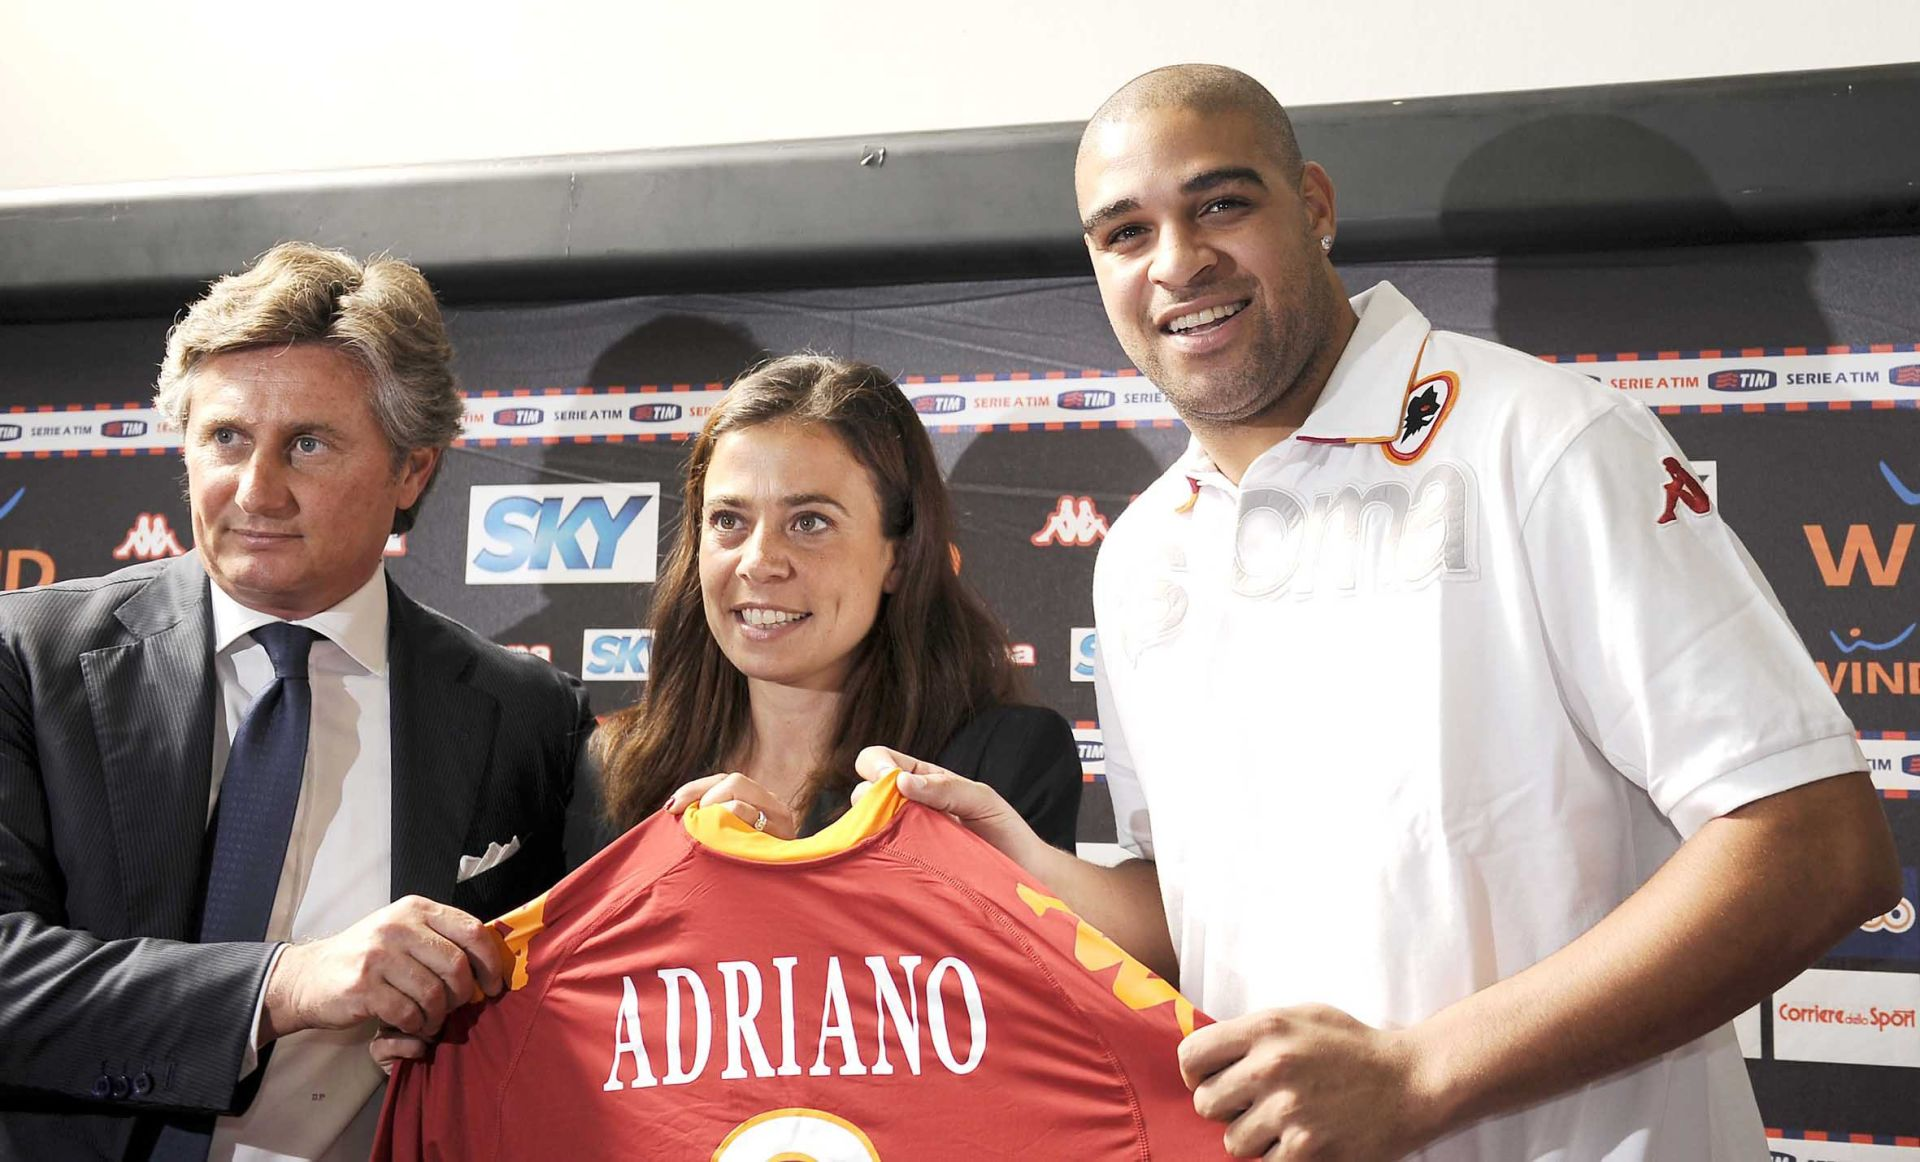 Roma - 09/06/2010 - Stadio Flaminio - Presentazione del nuovo acquisto della As Roma Leite Ribeiro ADRIANO - nella foto: Leite Ribeiro ADRIANO con Rosella SENSI e Daniele PRADE' ph. Corradetti / LIVERANI/NEWSPIX.PL PREZENTACJA NOWY ZAWODNIK AS ROMA ADRIANO POLAND ONLY !!! --- Newspix.pl *** Local Caption *** www.newspix.pl mail us: info@newspix.pl call us: 0048 022 23 22 222 --- Polish Picture Agency by Axel Springer Poland